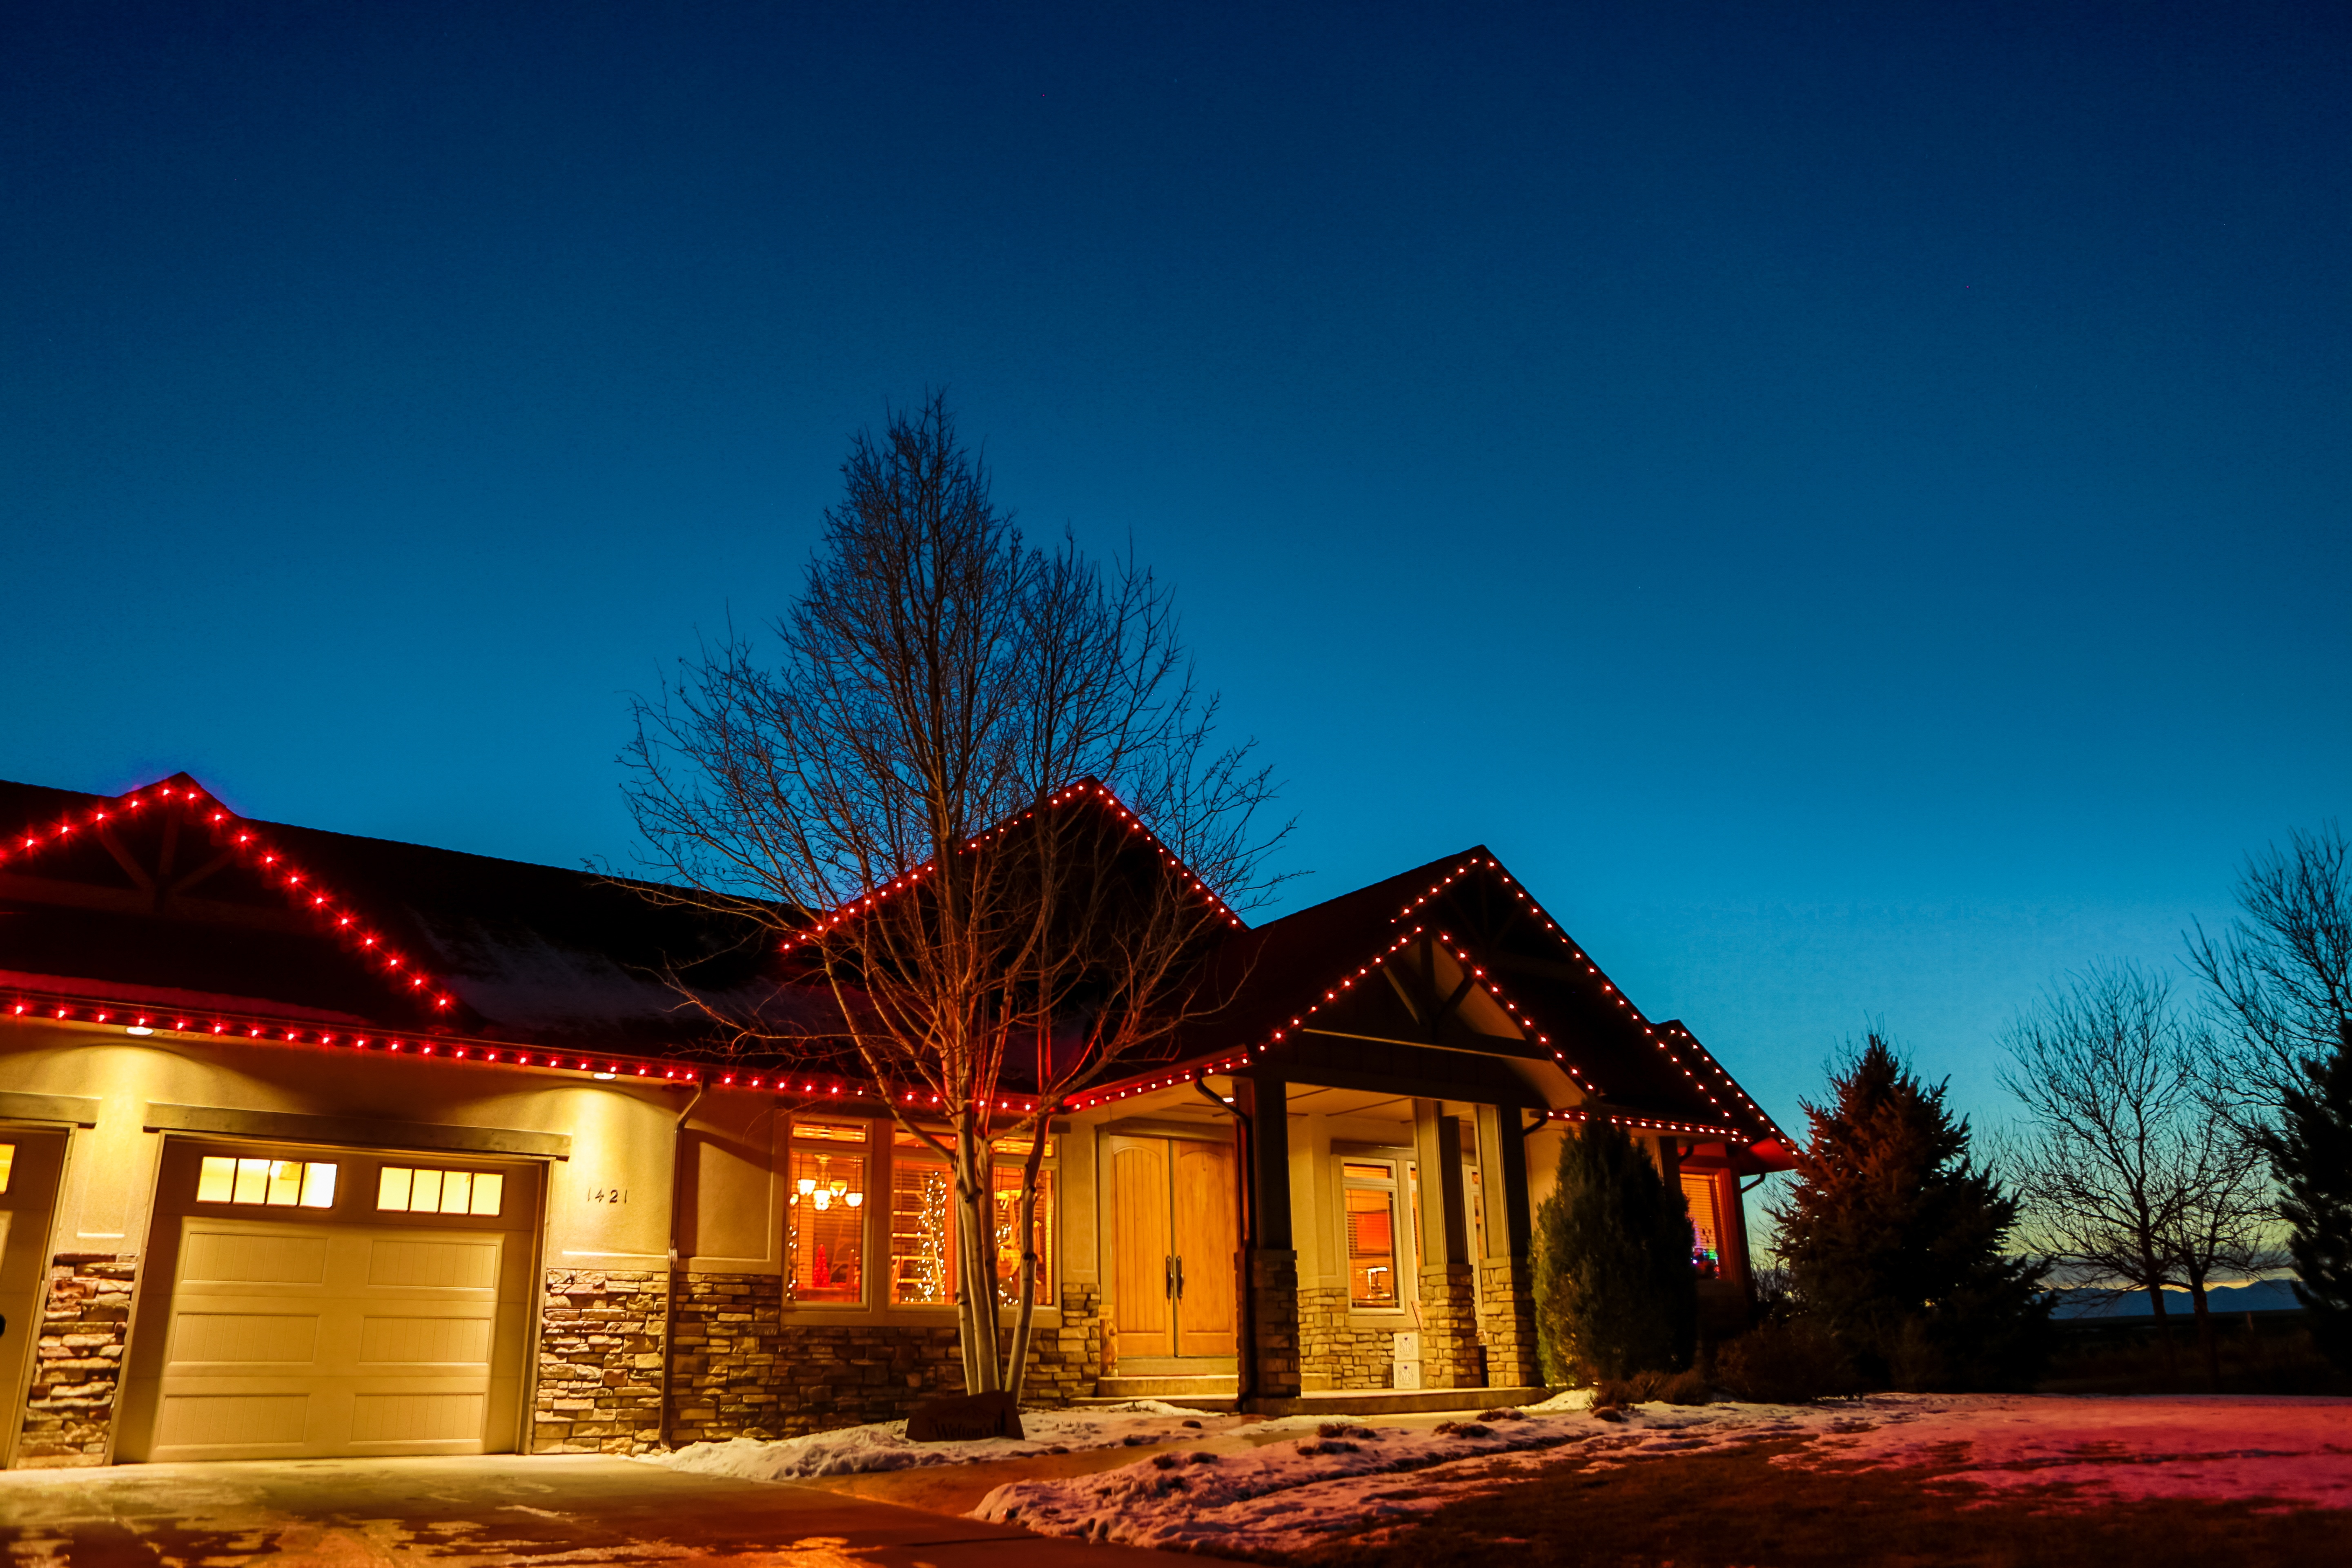 Top 10 Reasons To Install Permanent Led Christmas Lights On Your Home